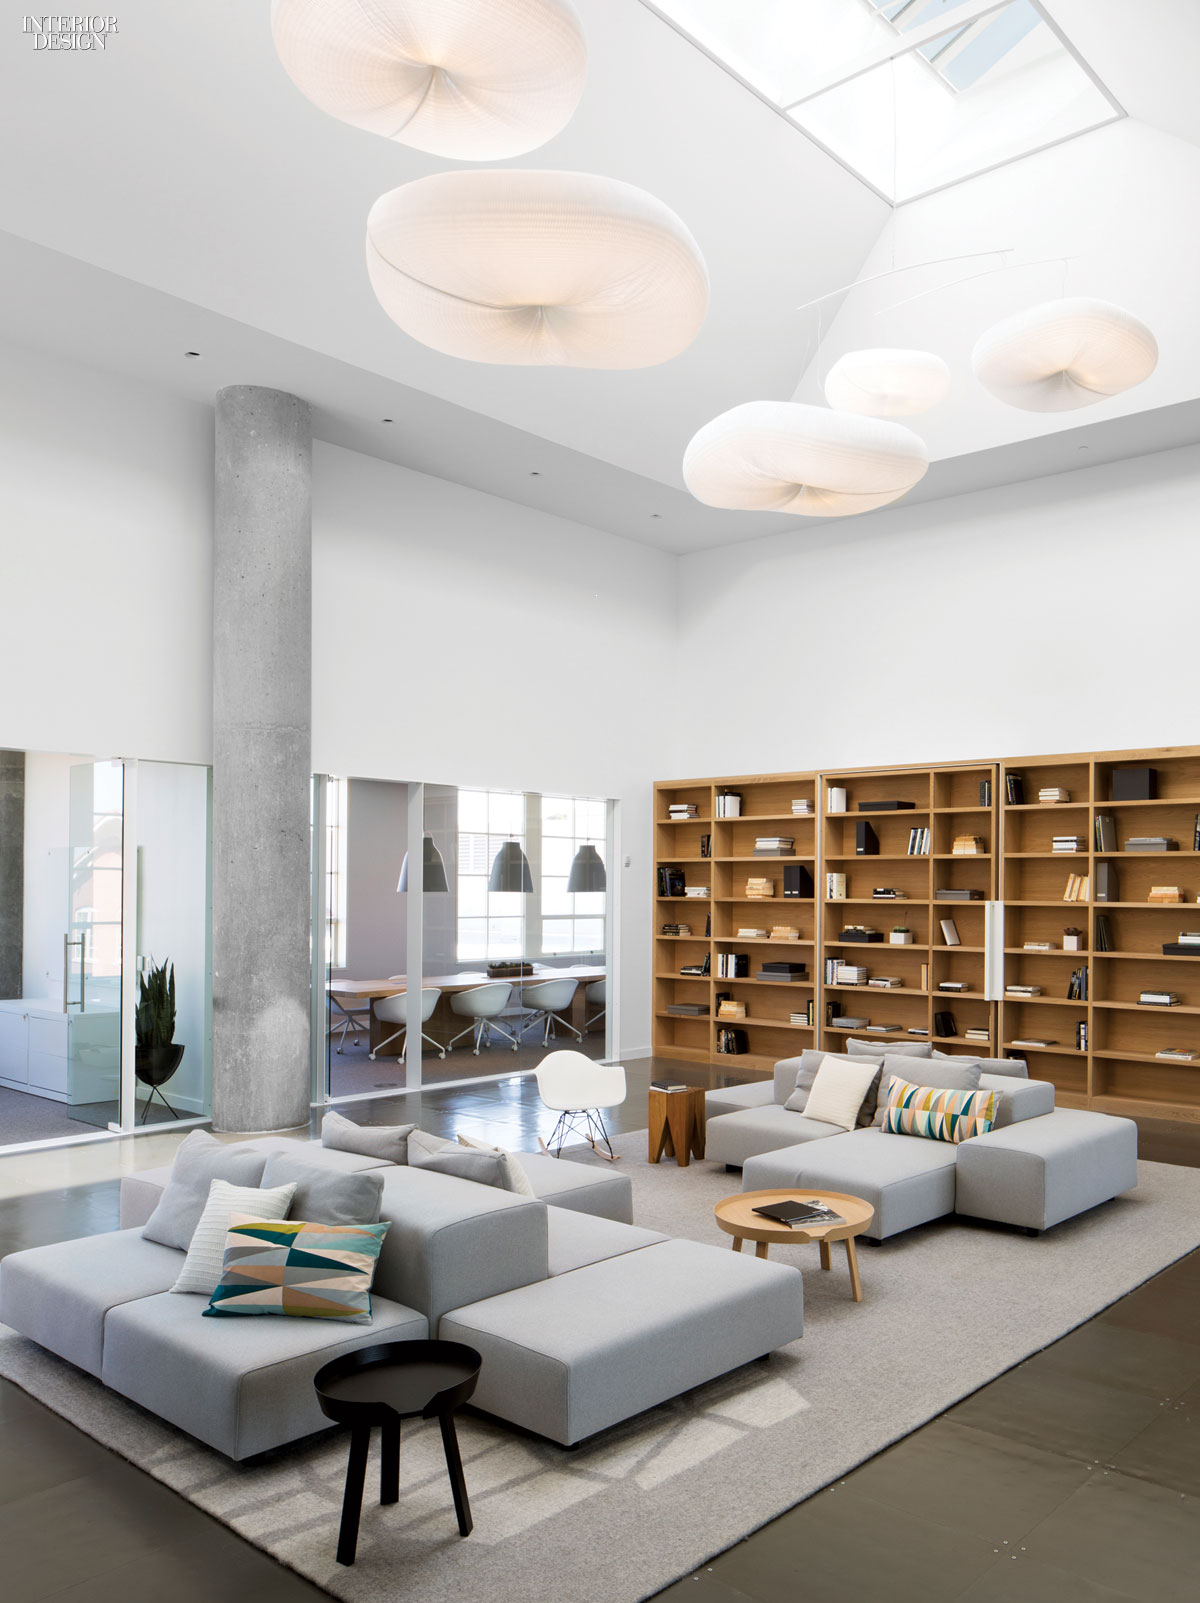 2014 boy winner small corporate office for Commercial interior design firms the list